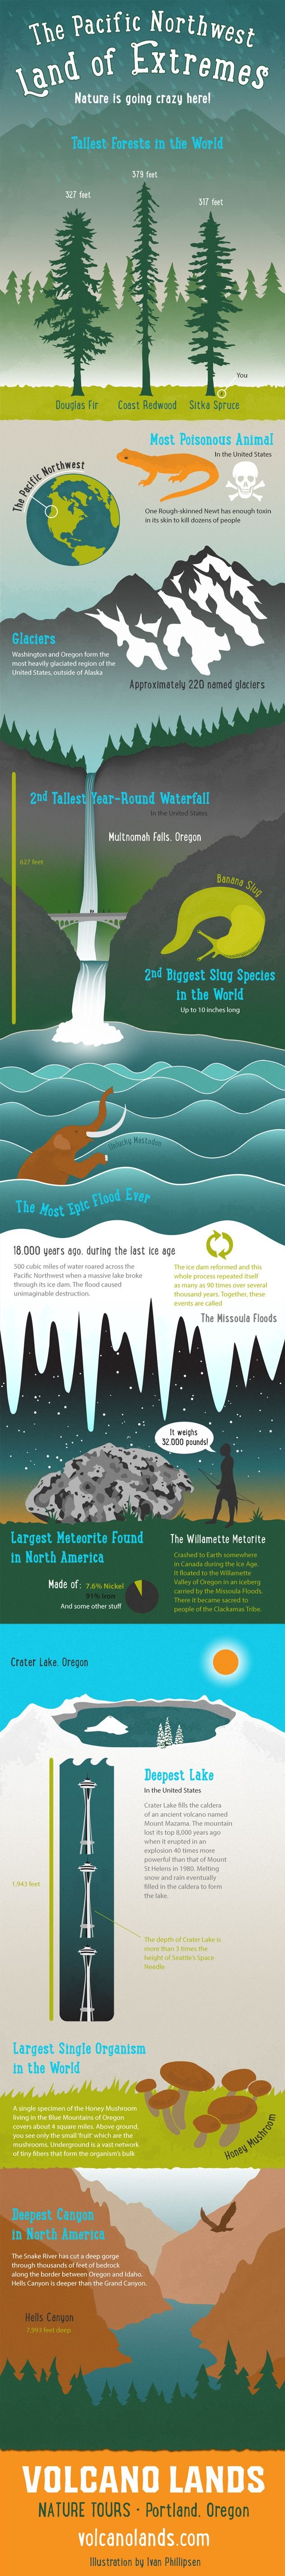 Infographic - Extremes of Nature in the Pacific Northwest